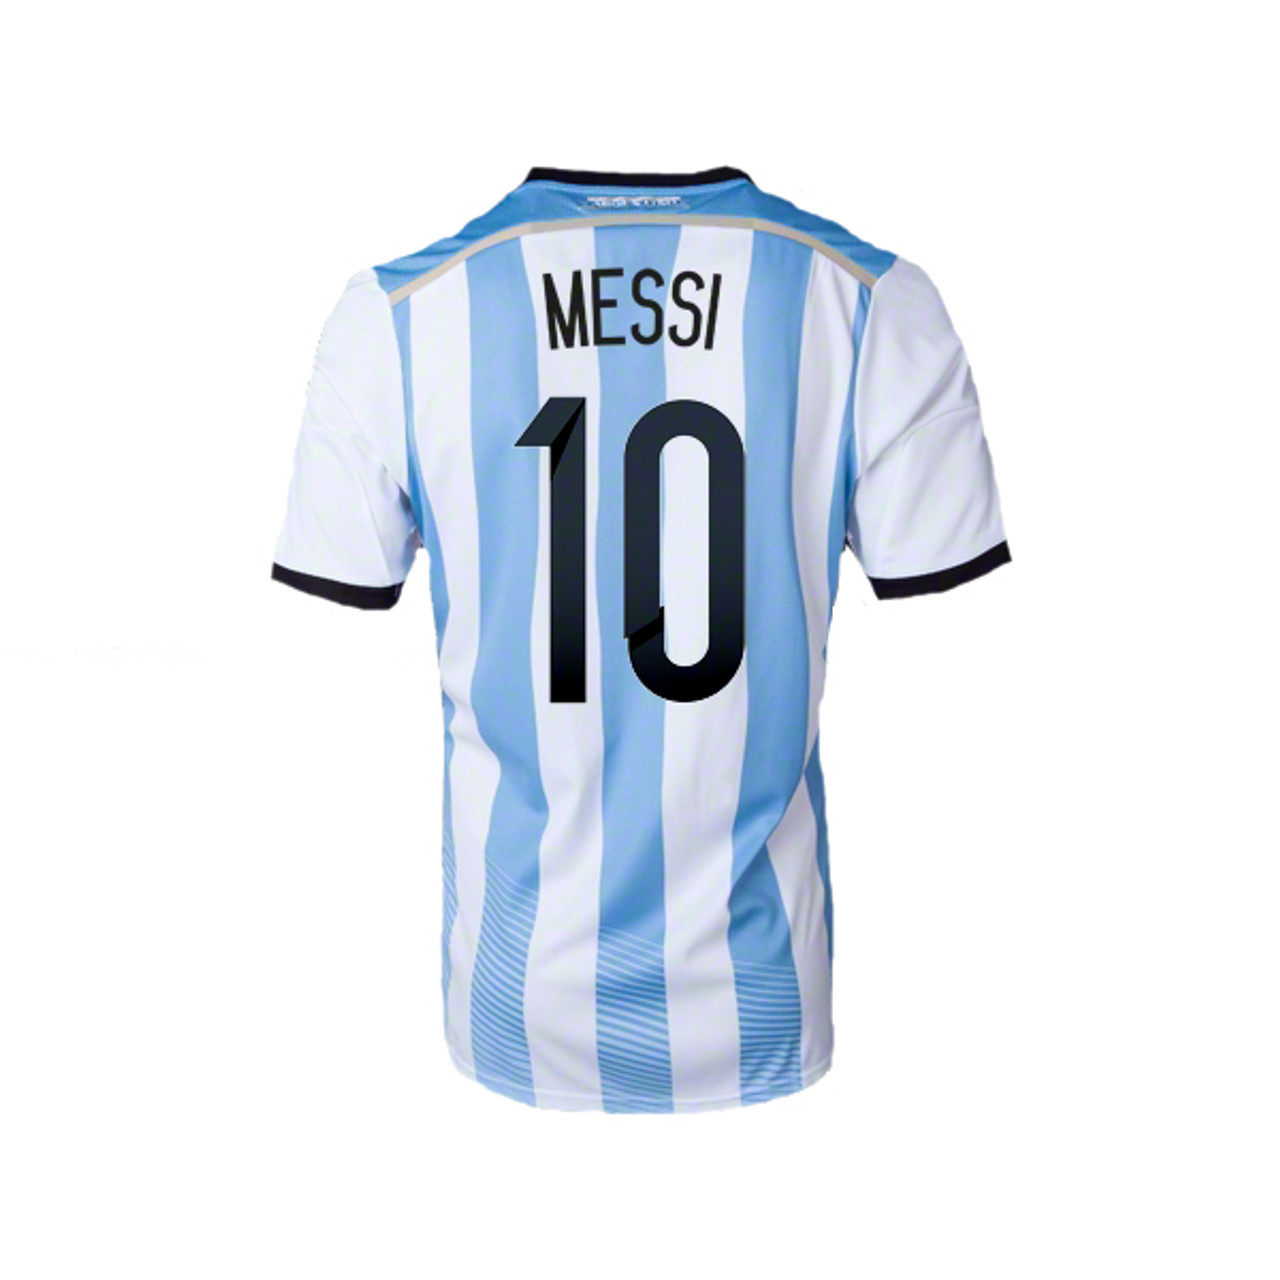 ADIDAS ARGENTINA WORLD CUP 2014 HOME `MESSI` JERSEY